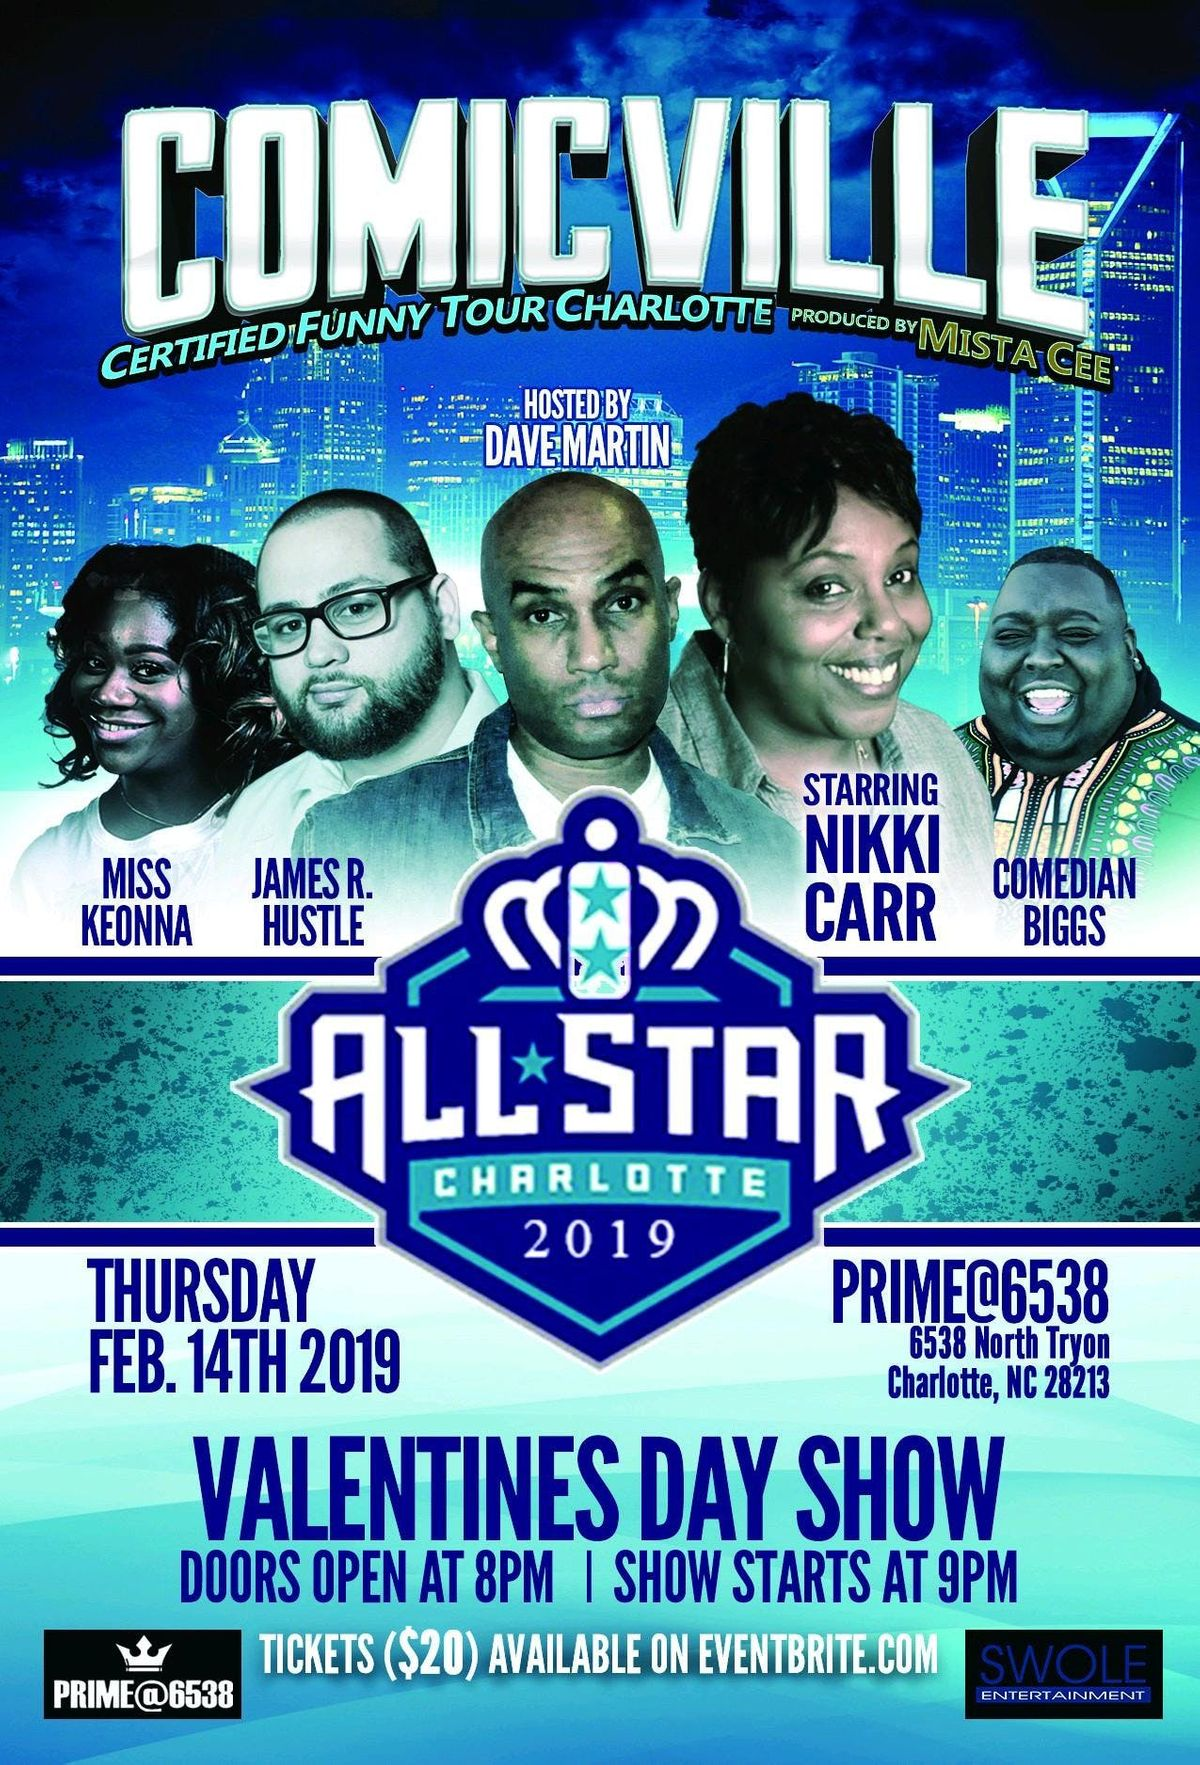 COMICVILLE  CERTIFIED Funny Tour ALL STAR CHARLOTTE